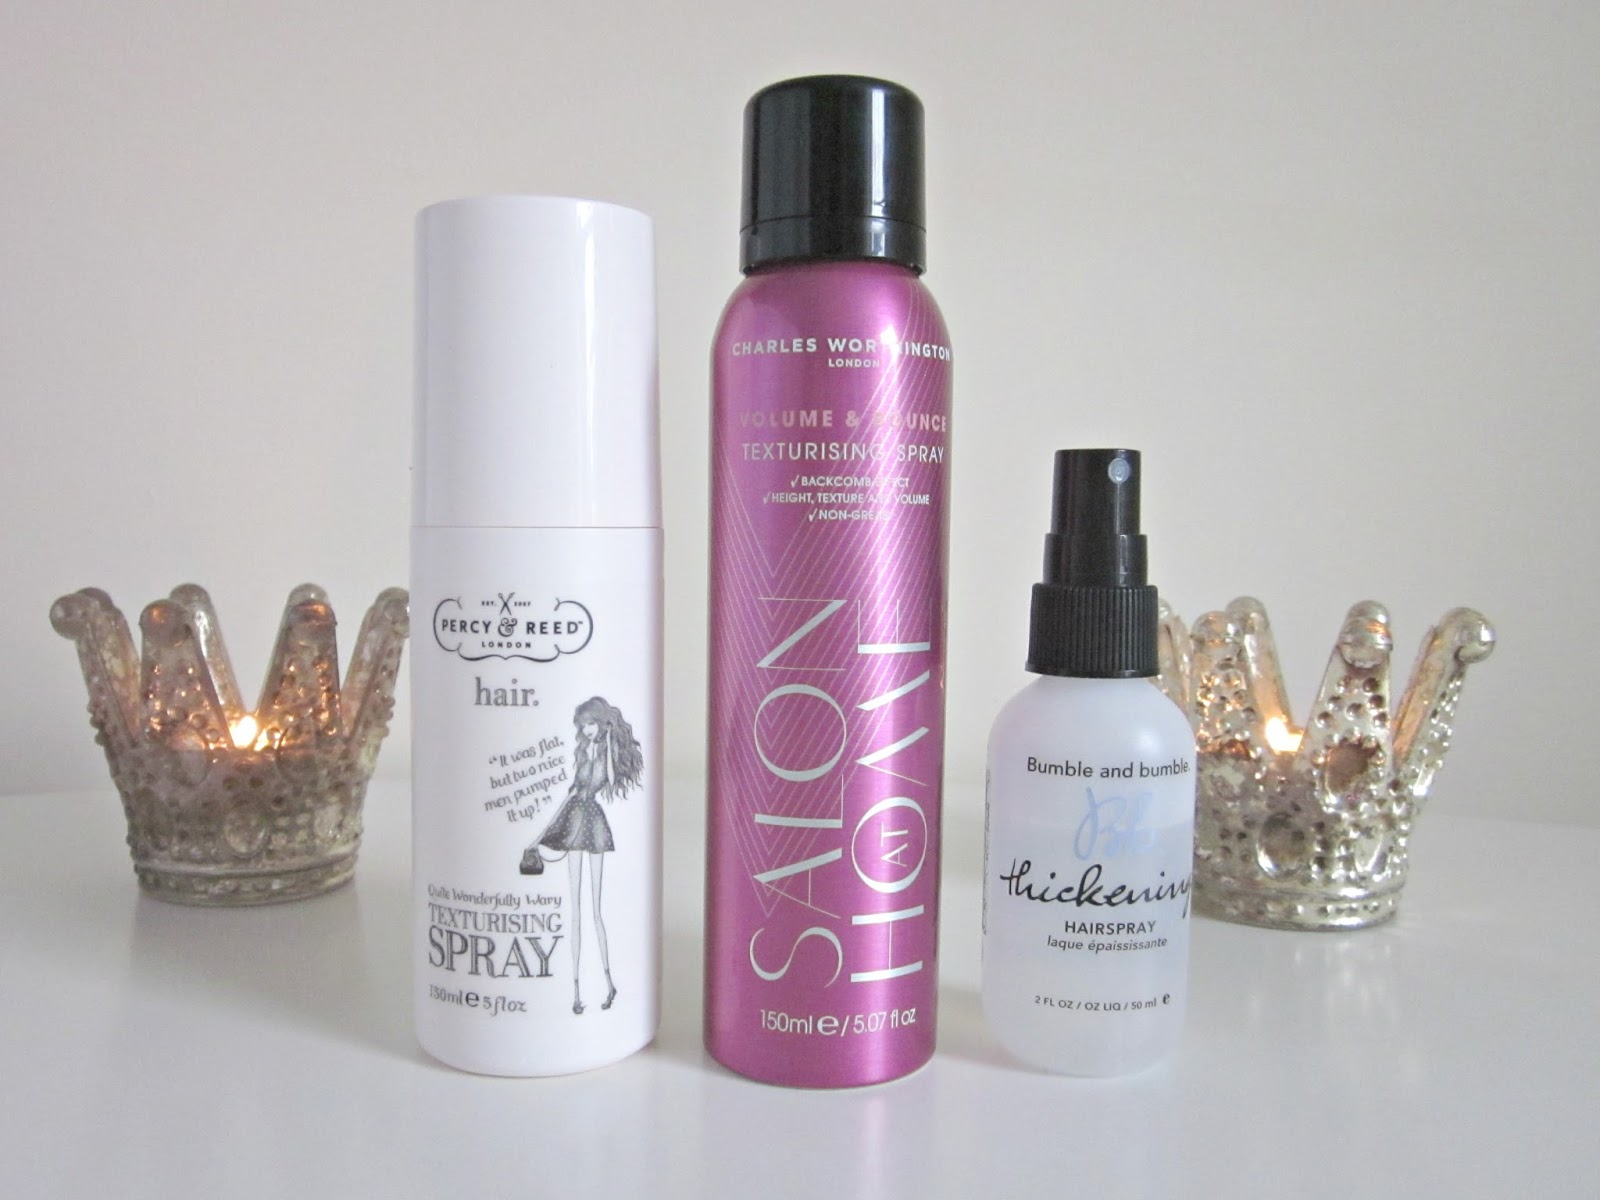 hair products percy and reed texturising spray charles worthington volume and bounce bumble and bumble thickening hairspray